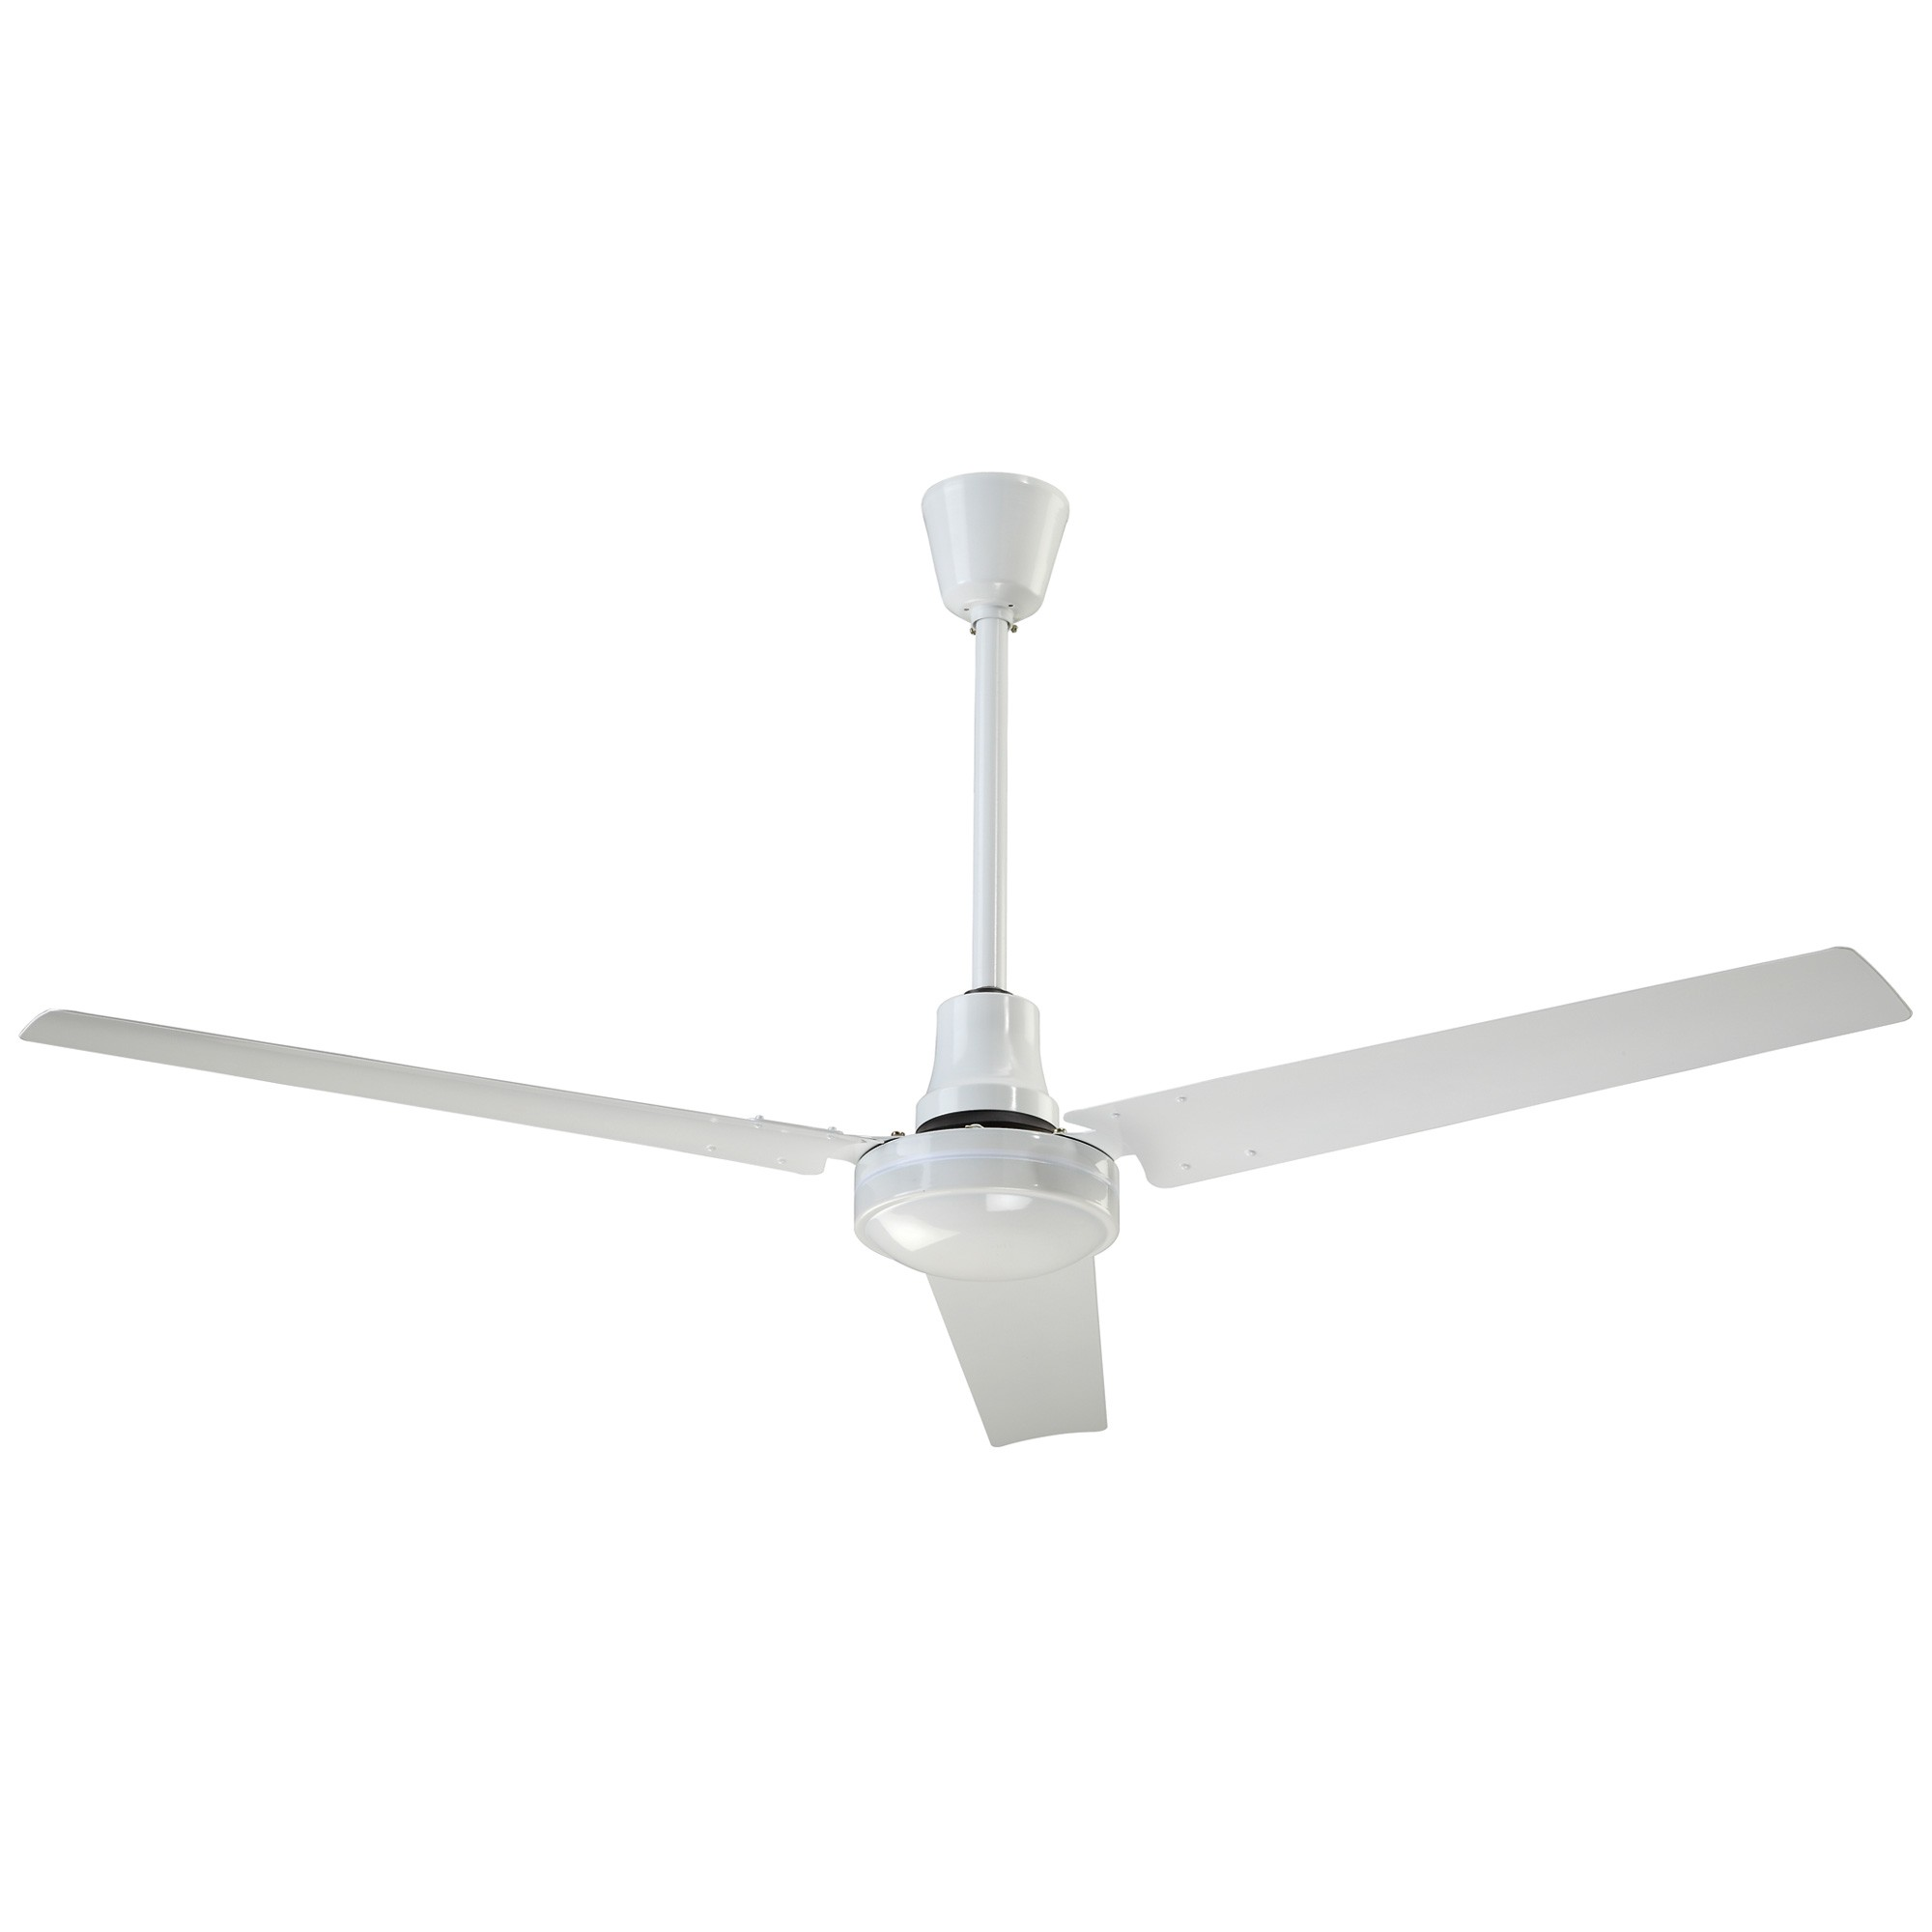 agricultural ceiling fans photo - 1